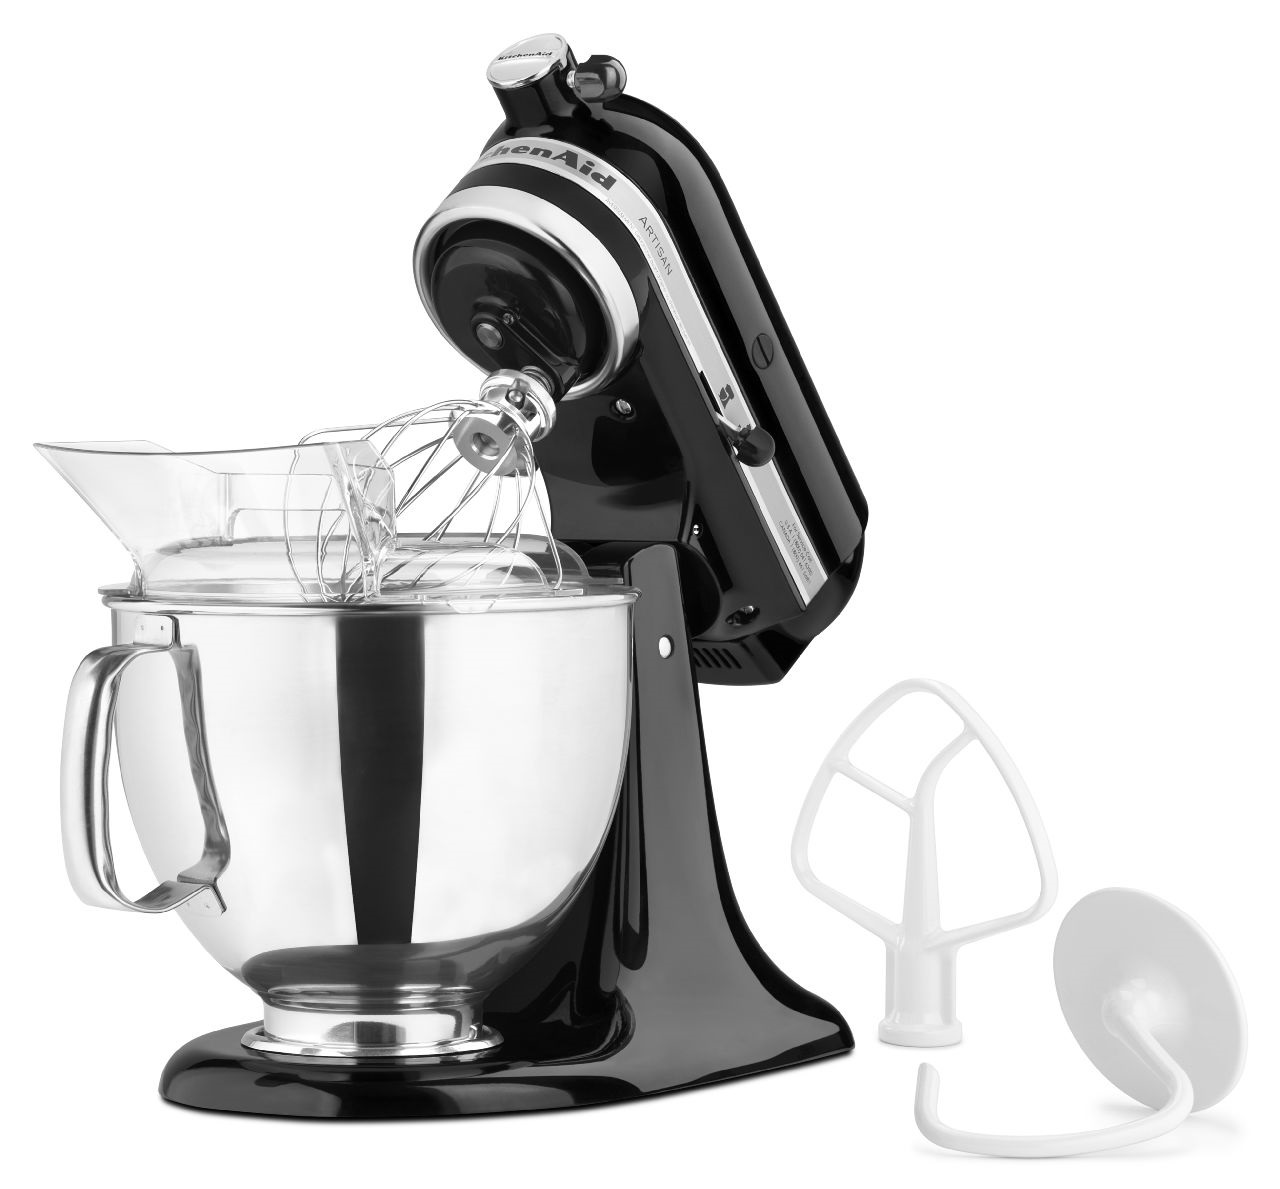 KitchenAid-Refurbished-Artisan-Series-5-Quart-Tilt-Head-Stand-Mixer-RRK150 thumbnail 73